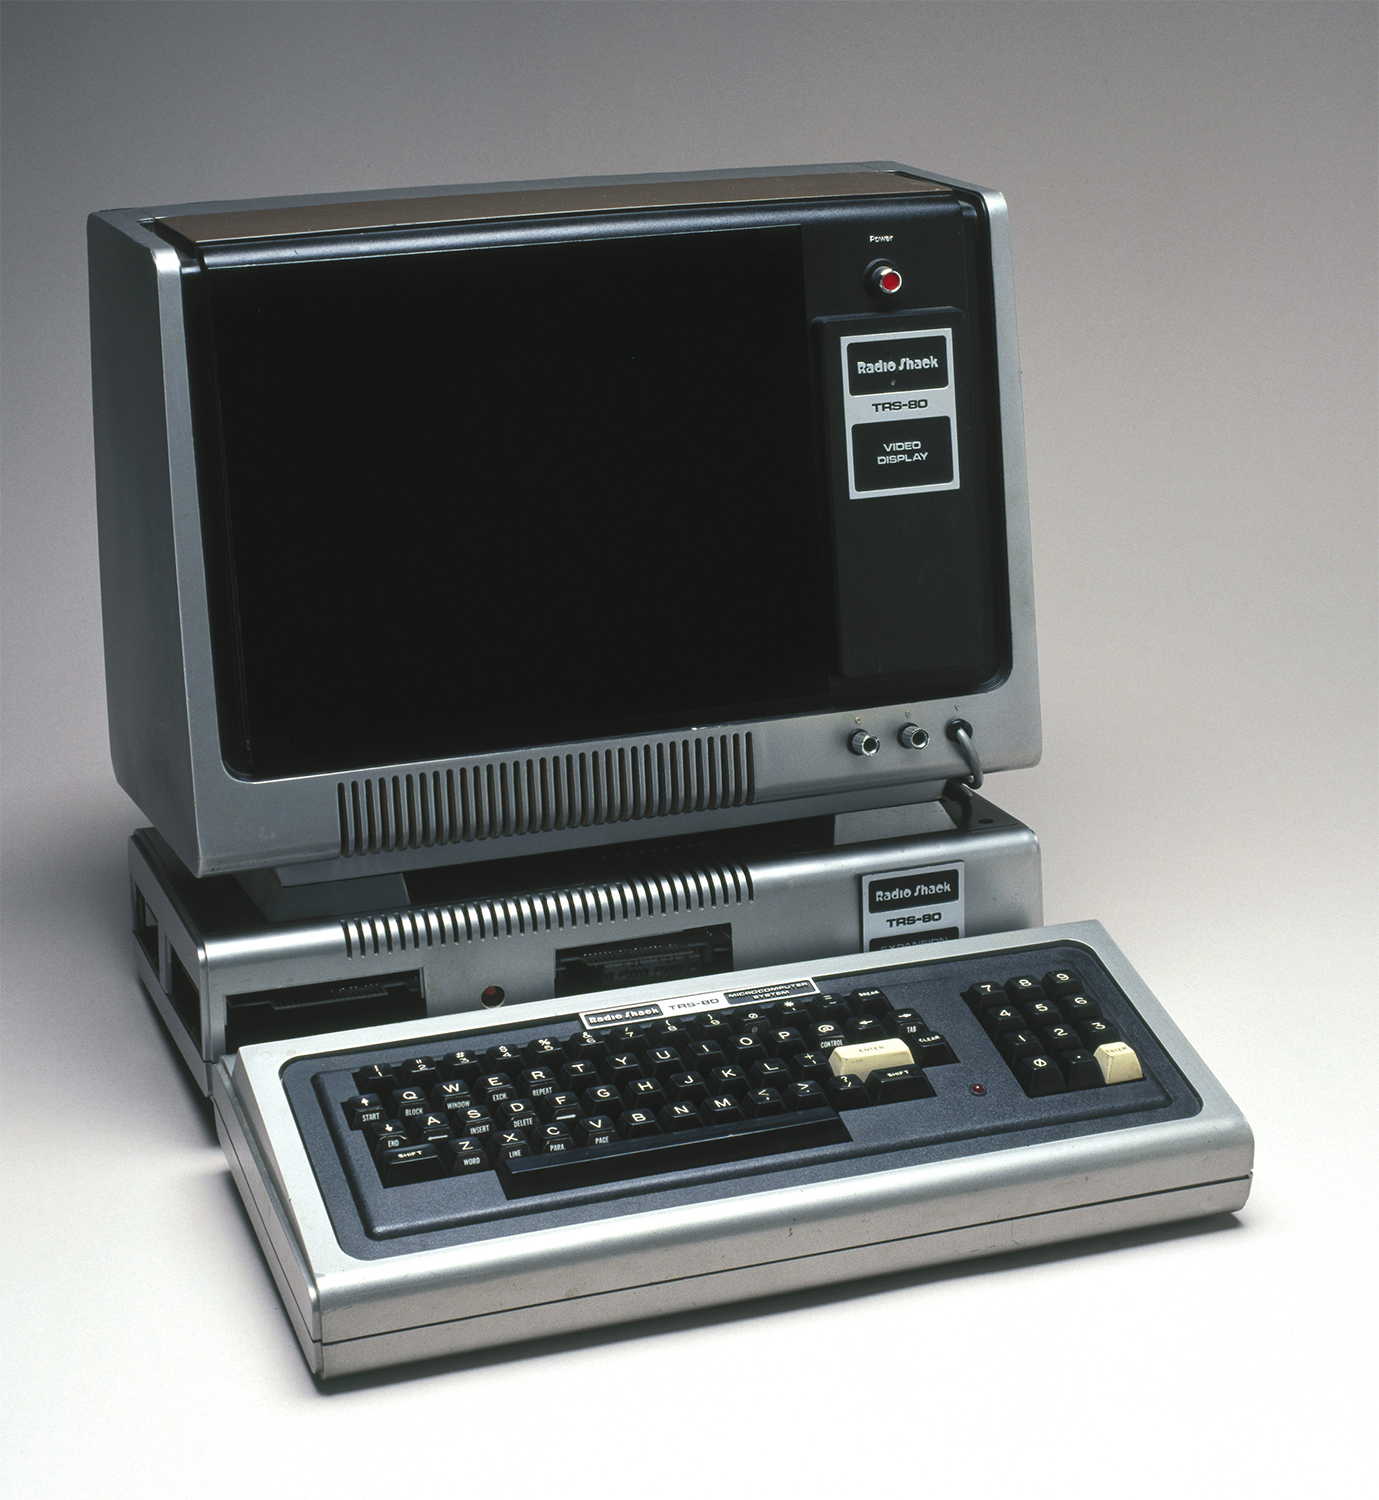 Radio Shack's TRS-80 (1977), one of the first PCs to come with BASIC as standard equipment